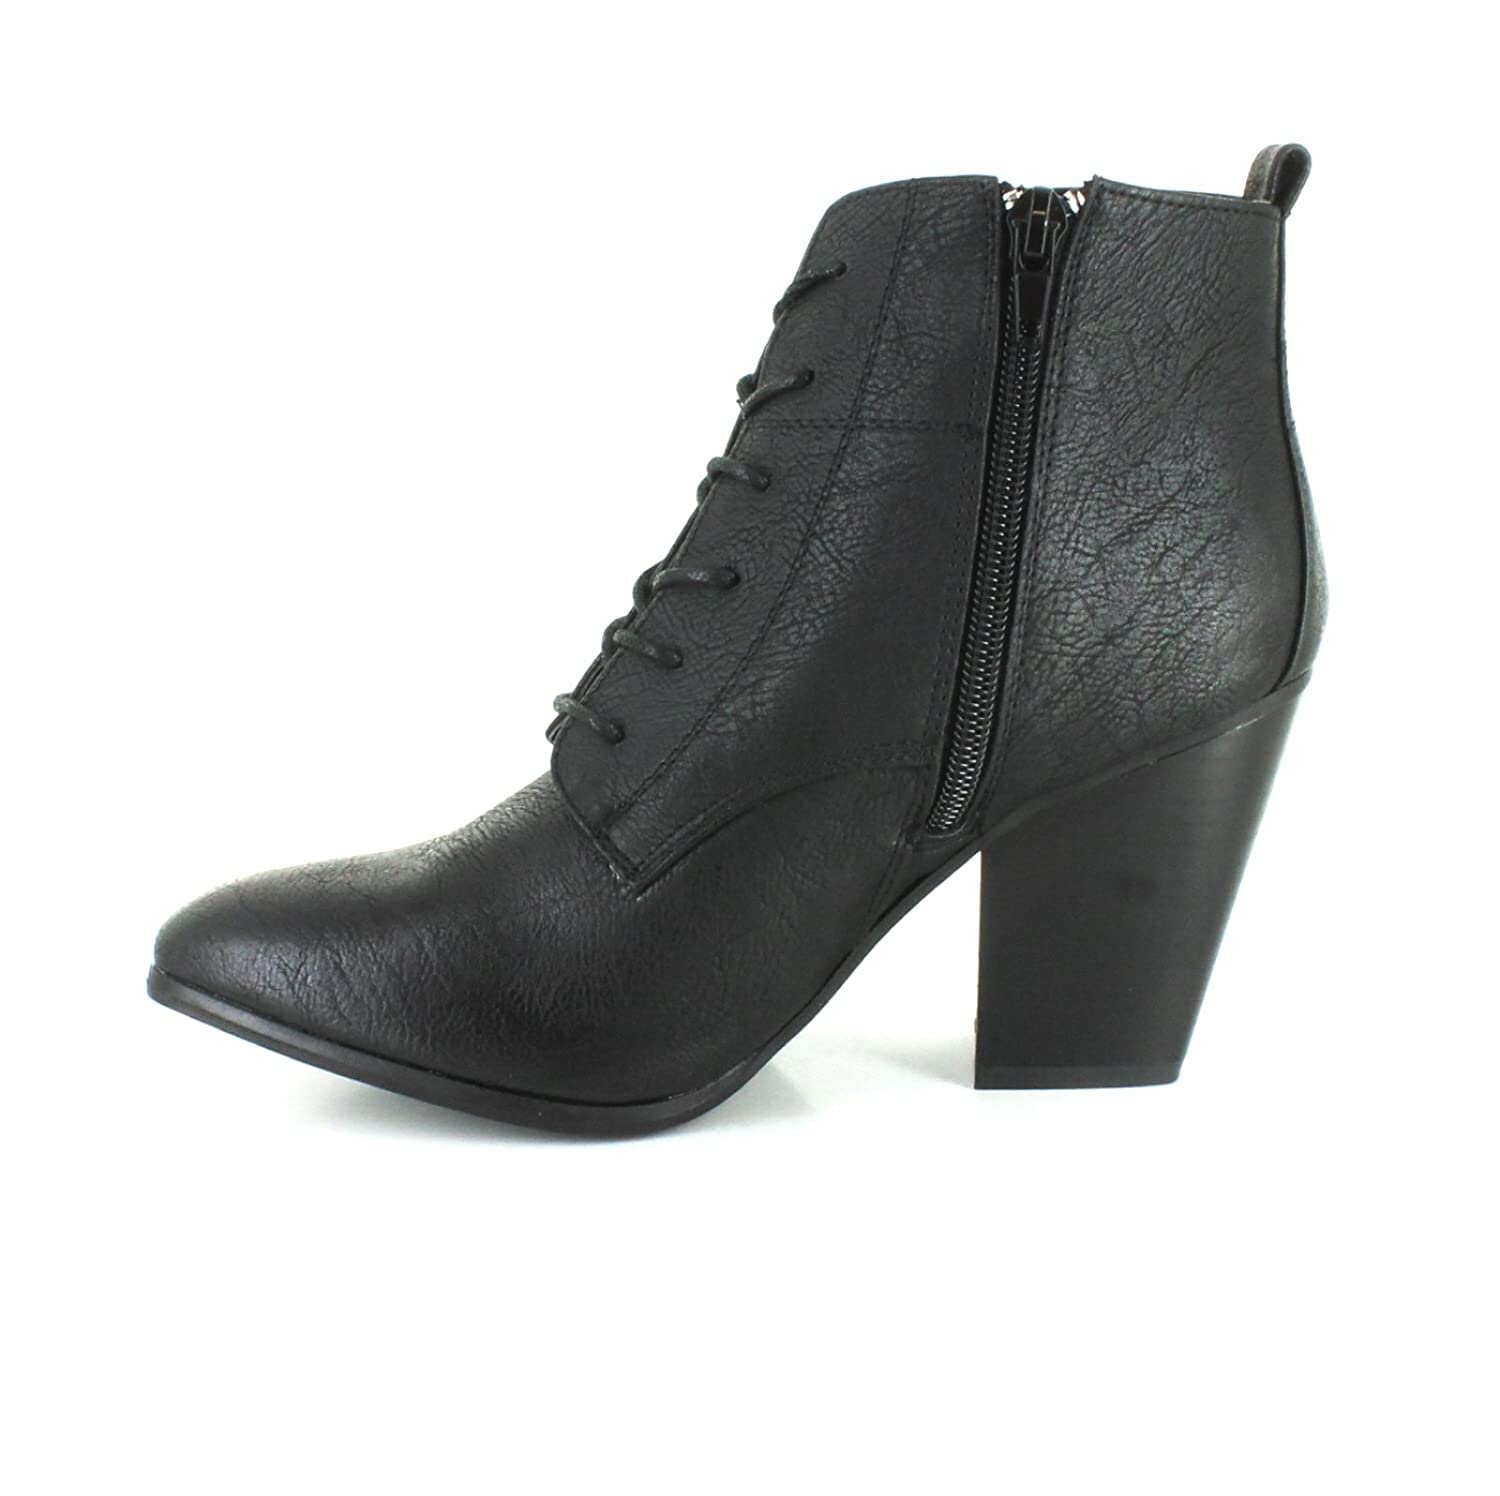 99ac723a441e Wynsors New Ladies Black Mid Heel Ankle Boots with A Victorian Theme On  Trend - Black - UK Size 8  Amazon.co.uk  Shoes   Bags